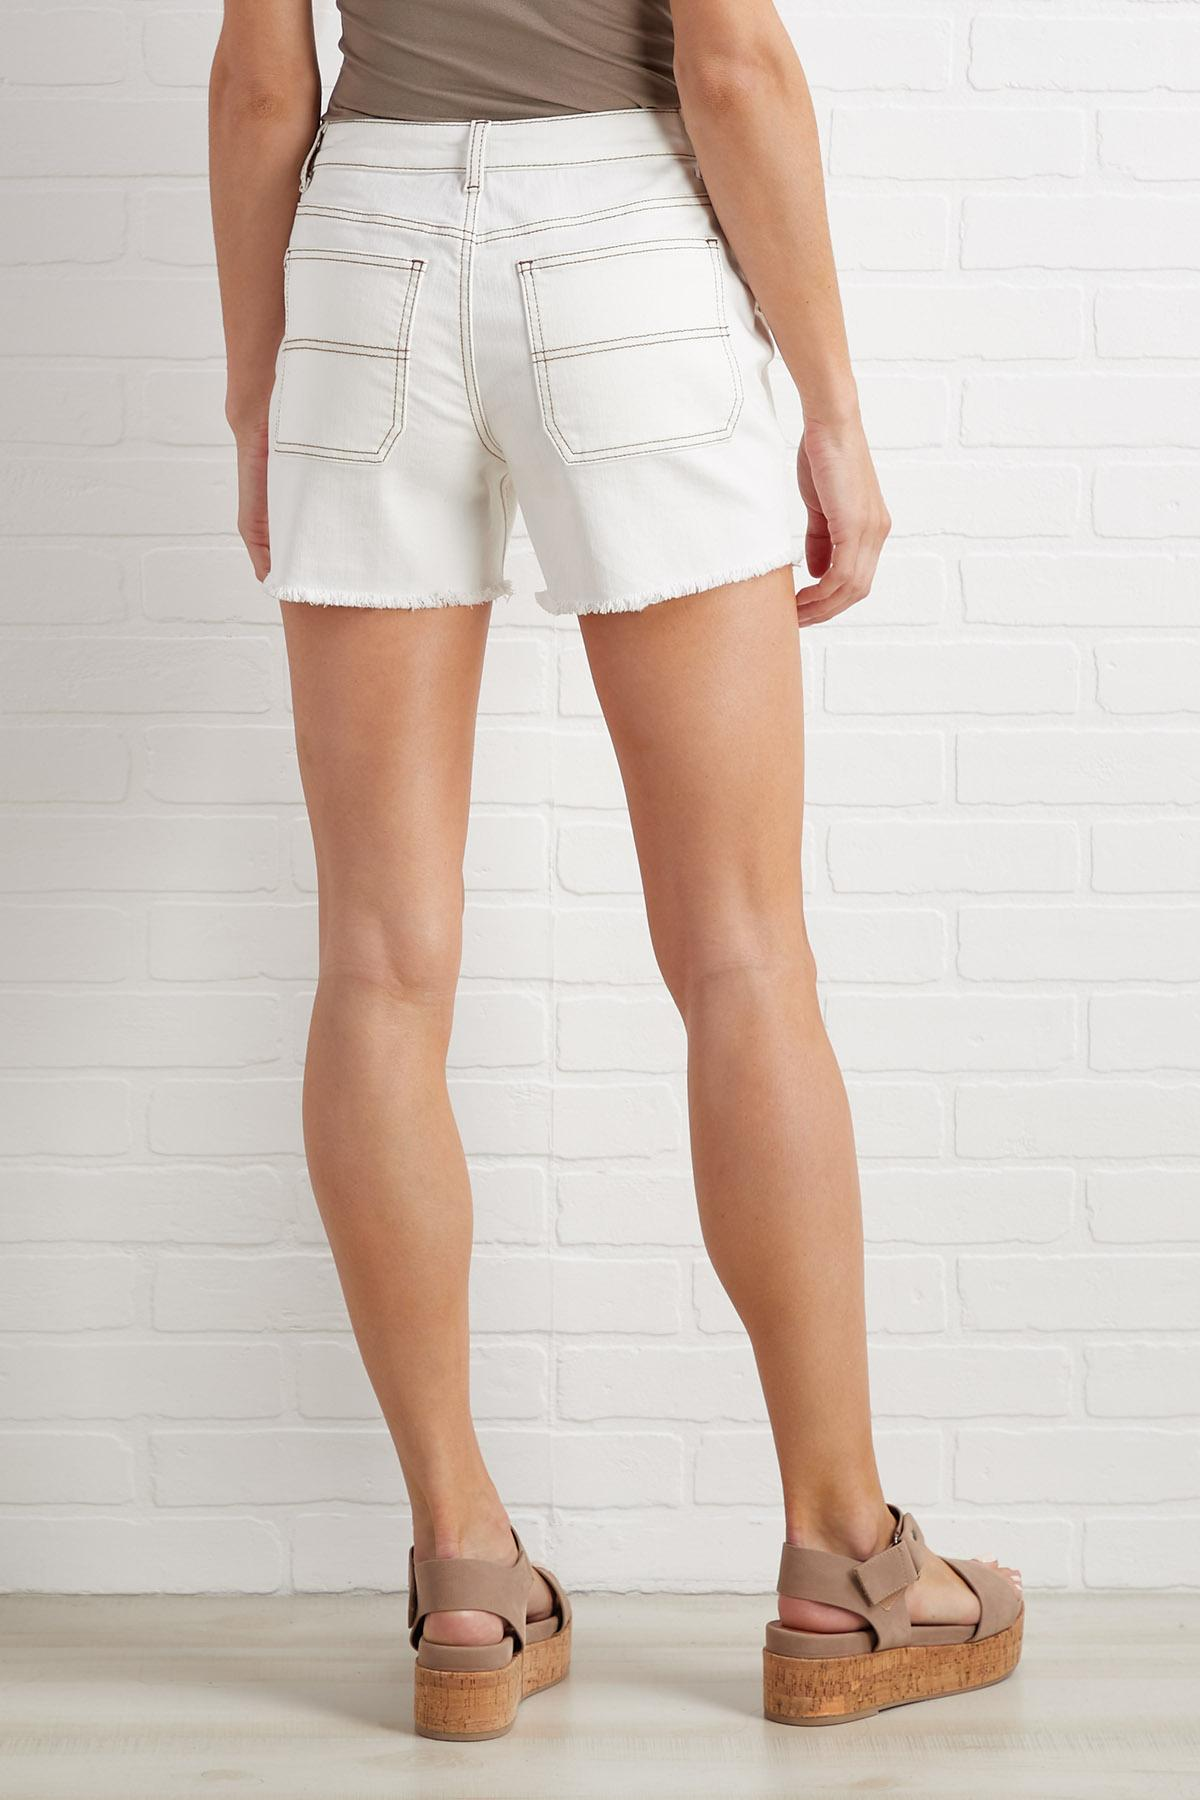 Contrasting Opinions Shorts